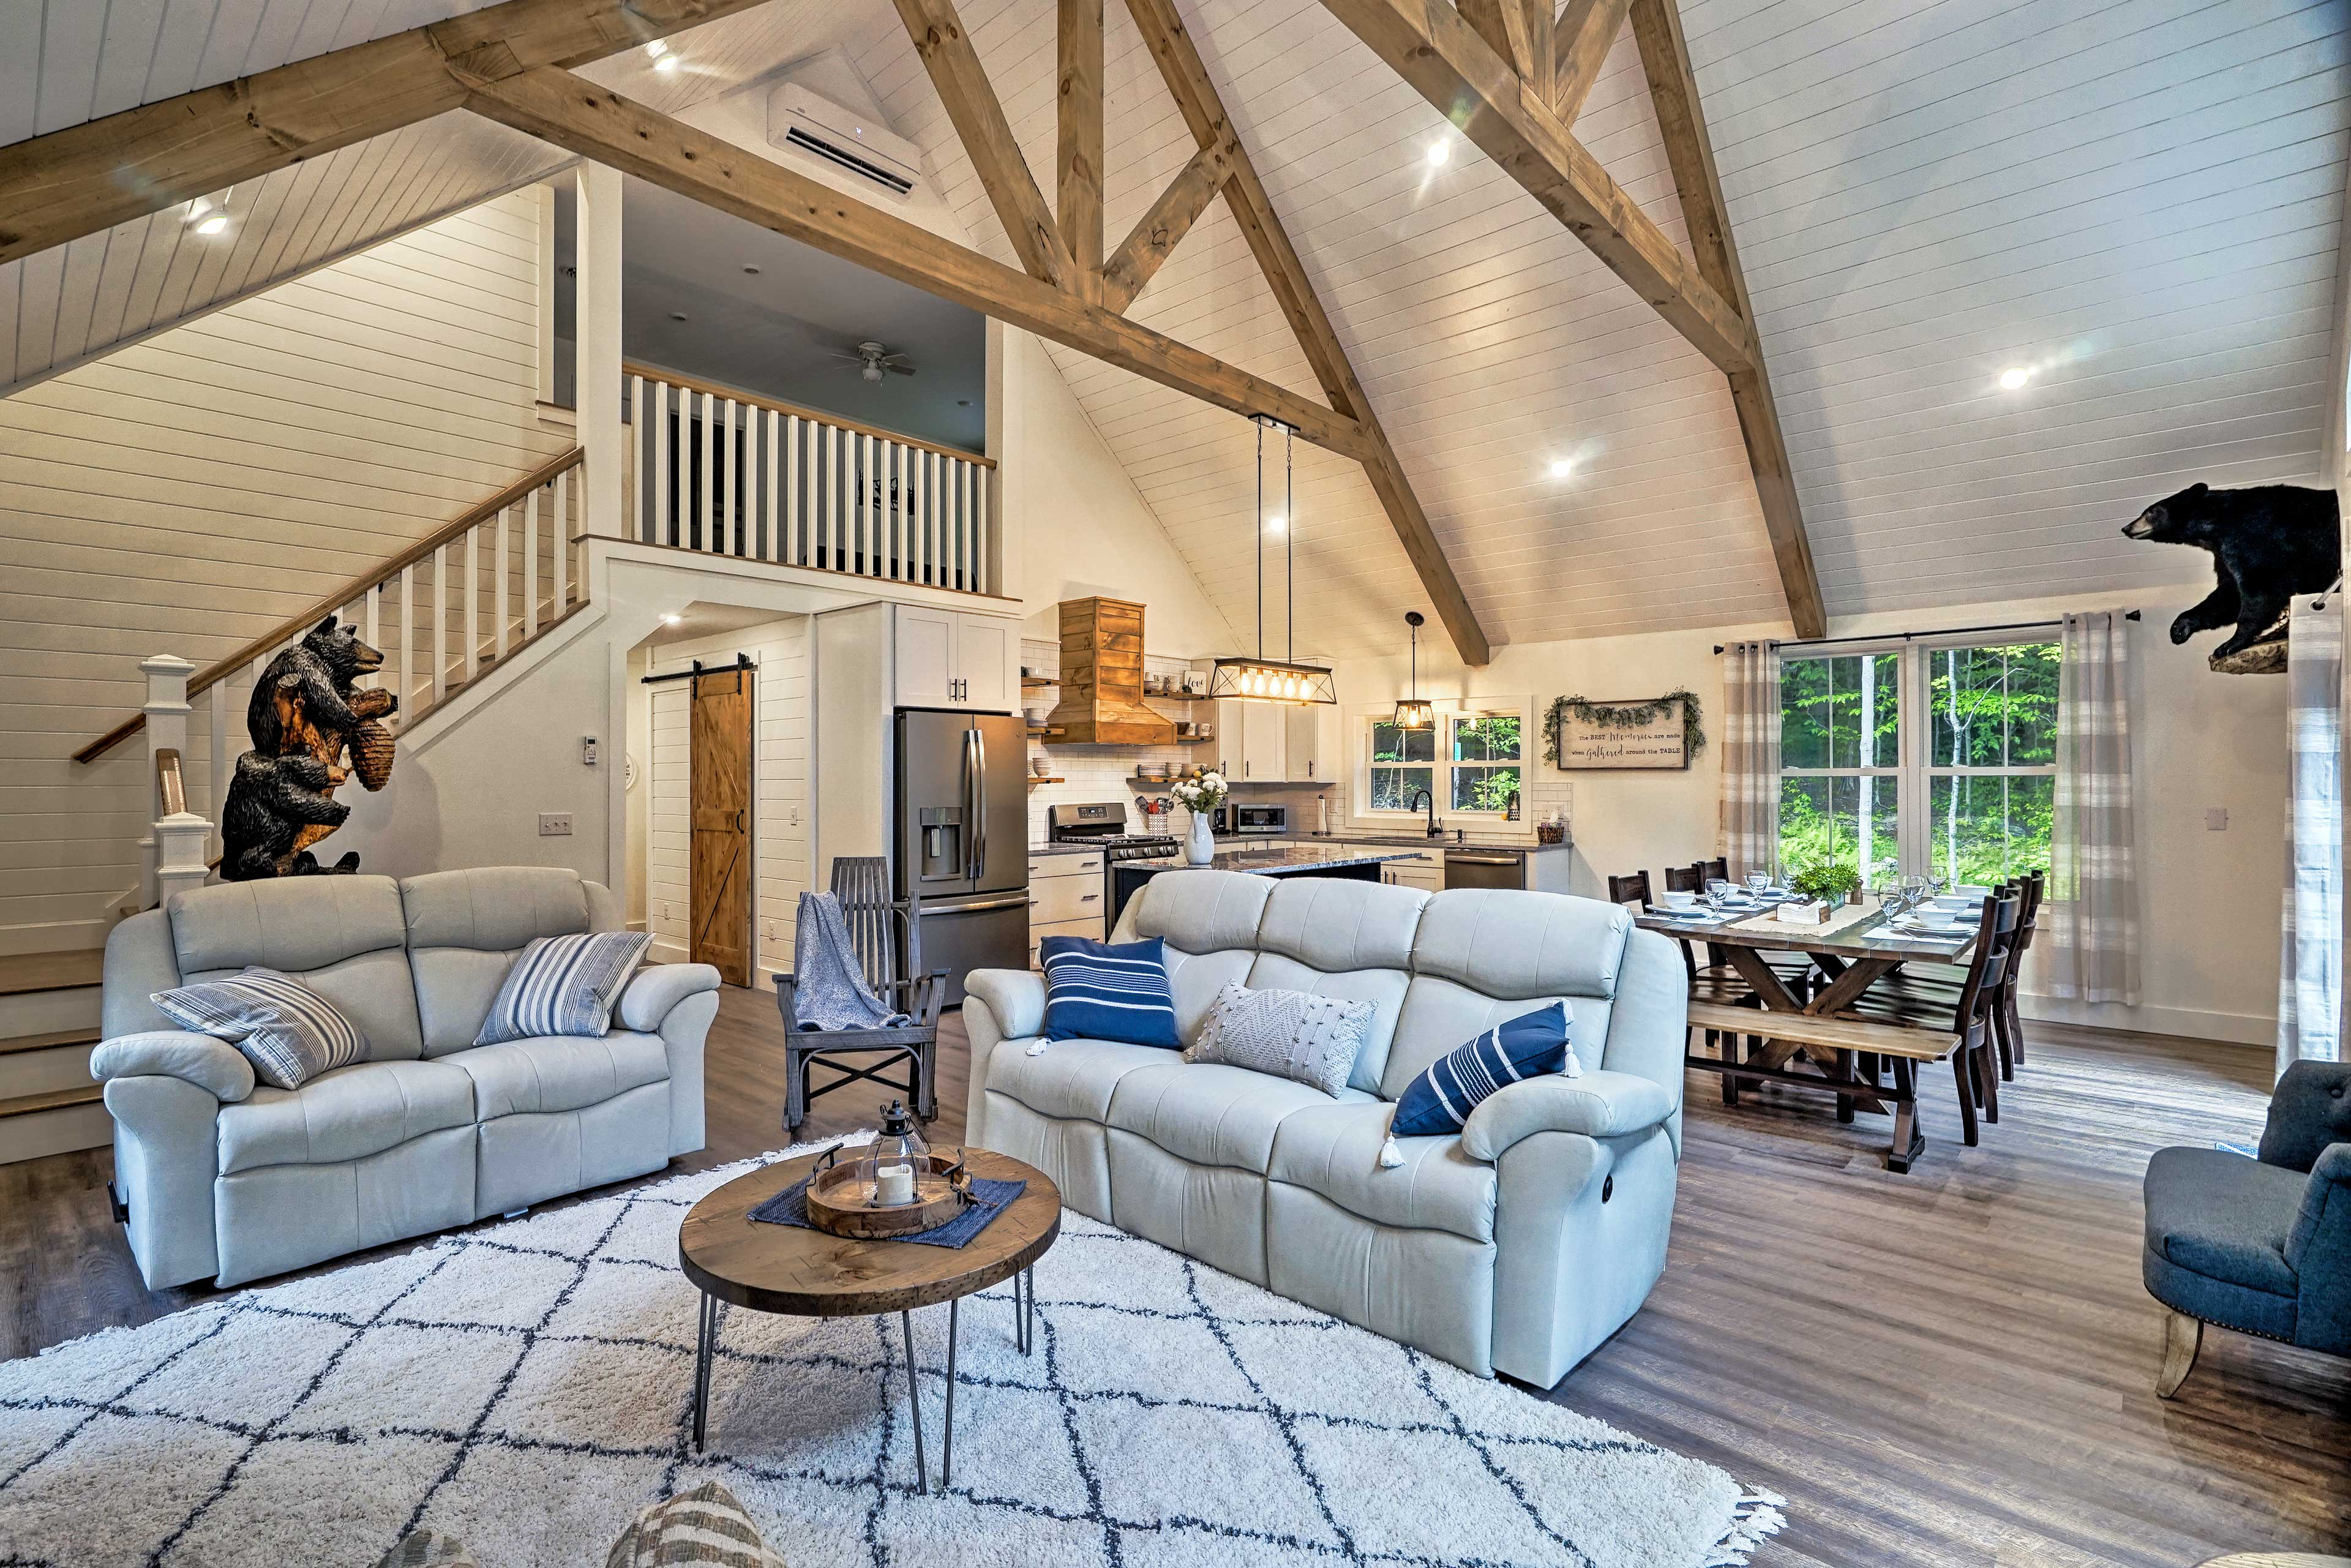 Cozy furnishings complete this charming home.